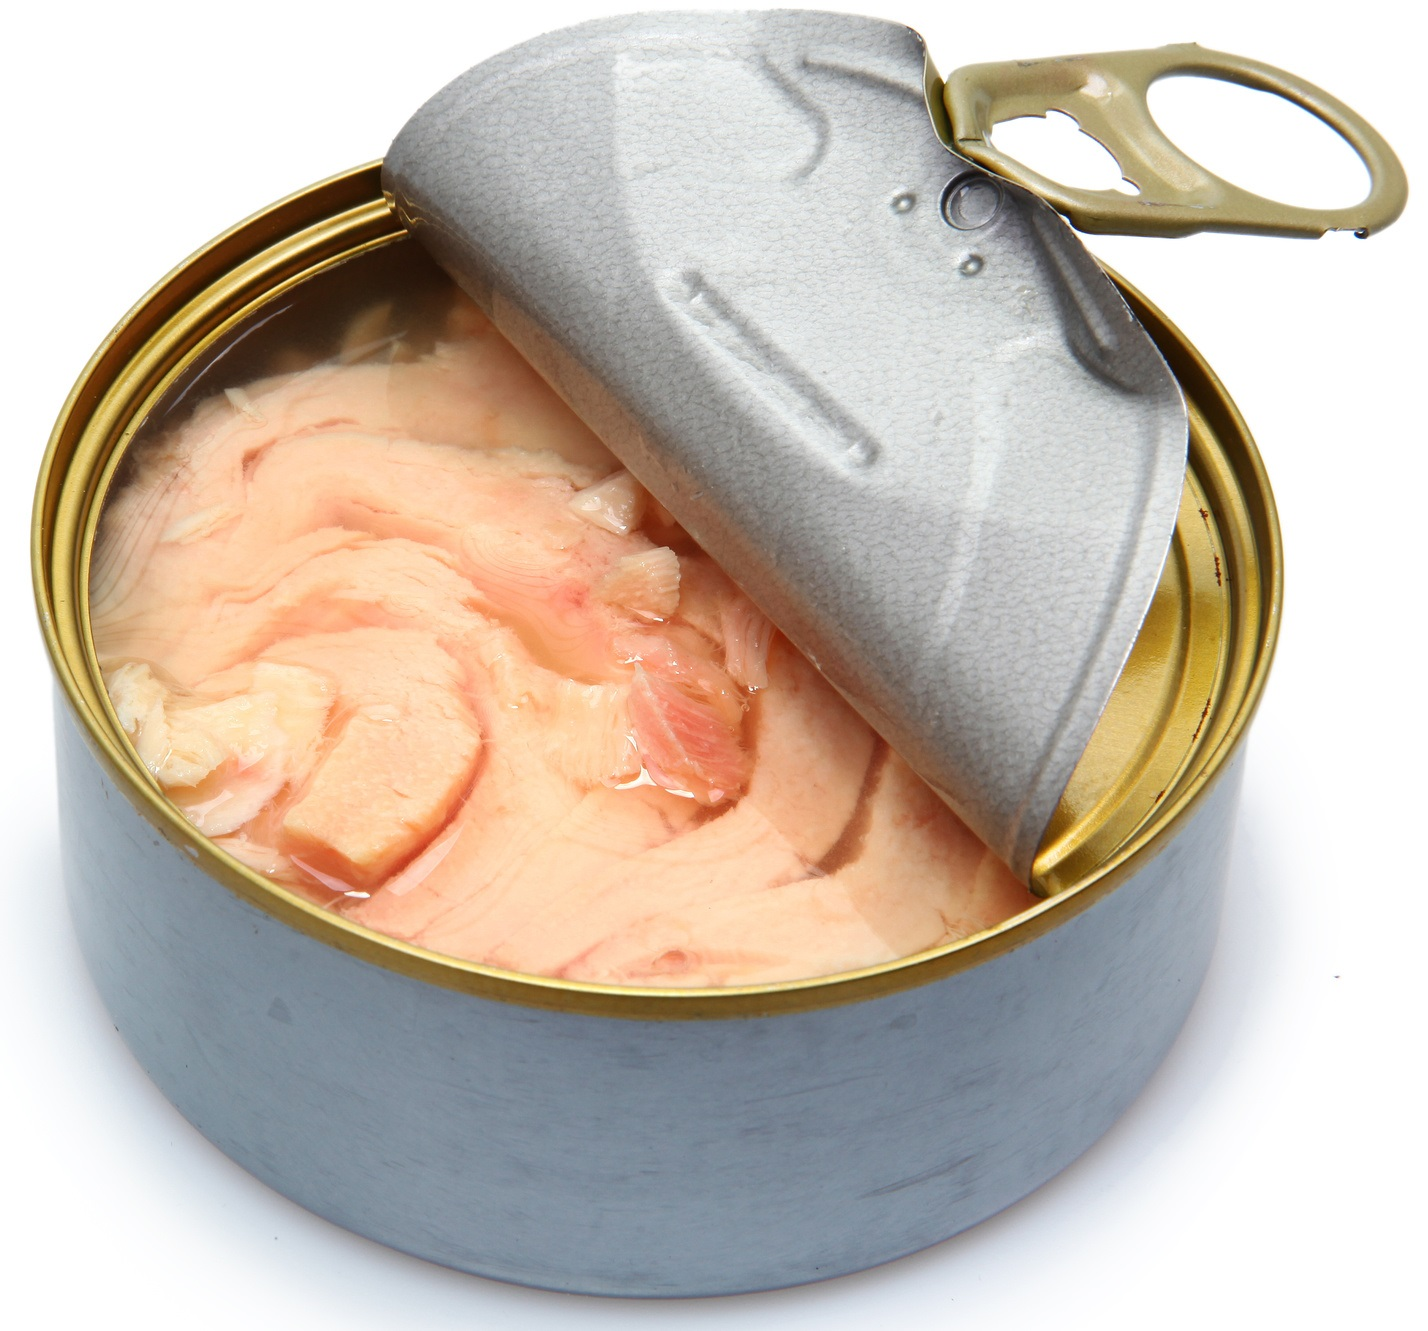 Soy Free Albacore Tuna packed in Water